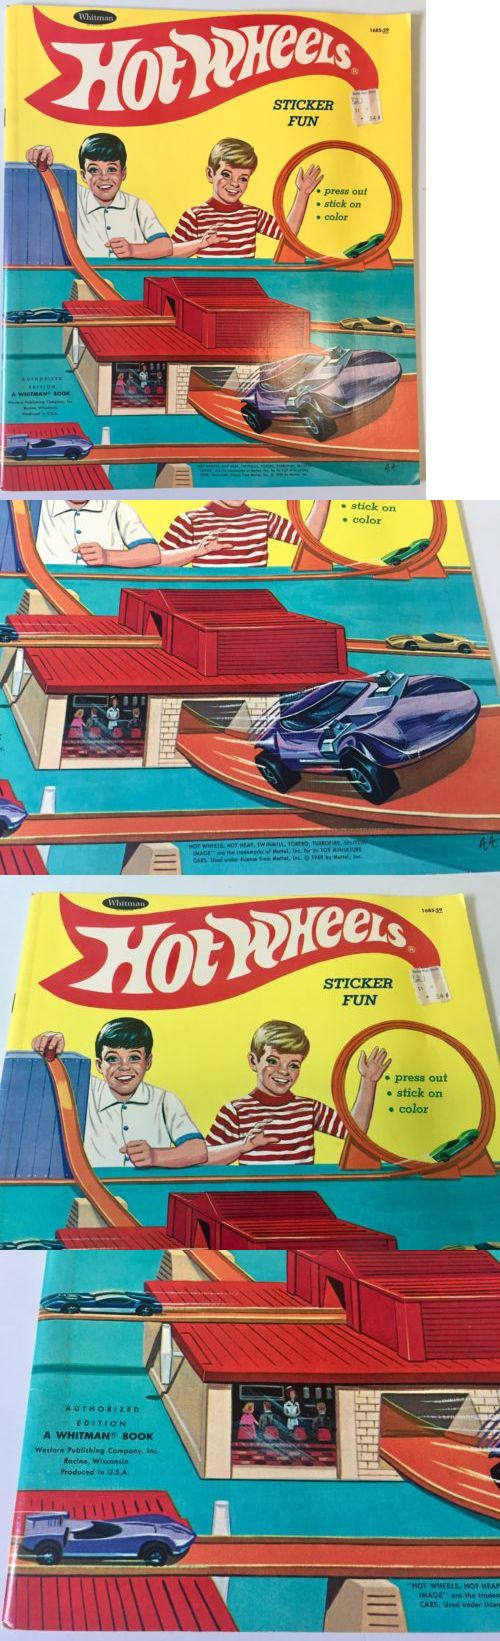 Whitman hot wheels coloring book - Vintage Manufacture 180507 Hot Wheels Heavy Chevy 1 24 Redline Buy It Now Only 100 On Ebay Vintage Manufacture 180507 Pinterest Redline